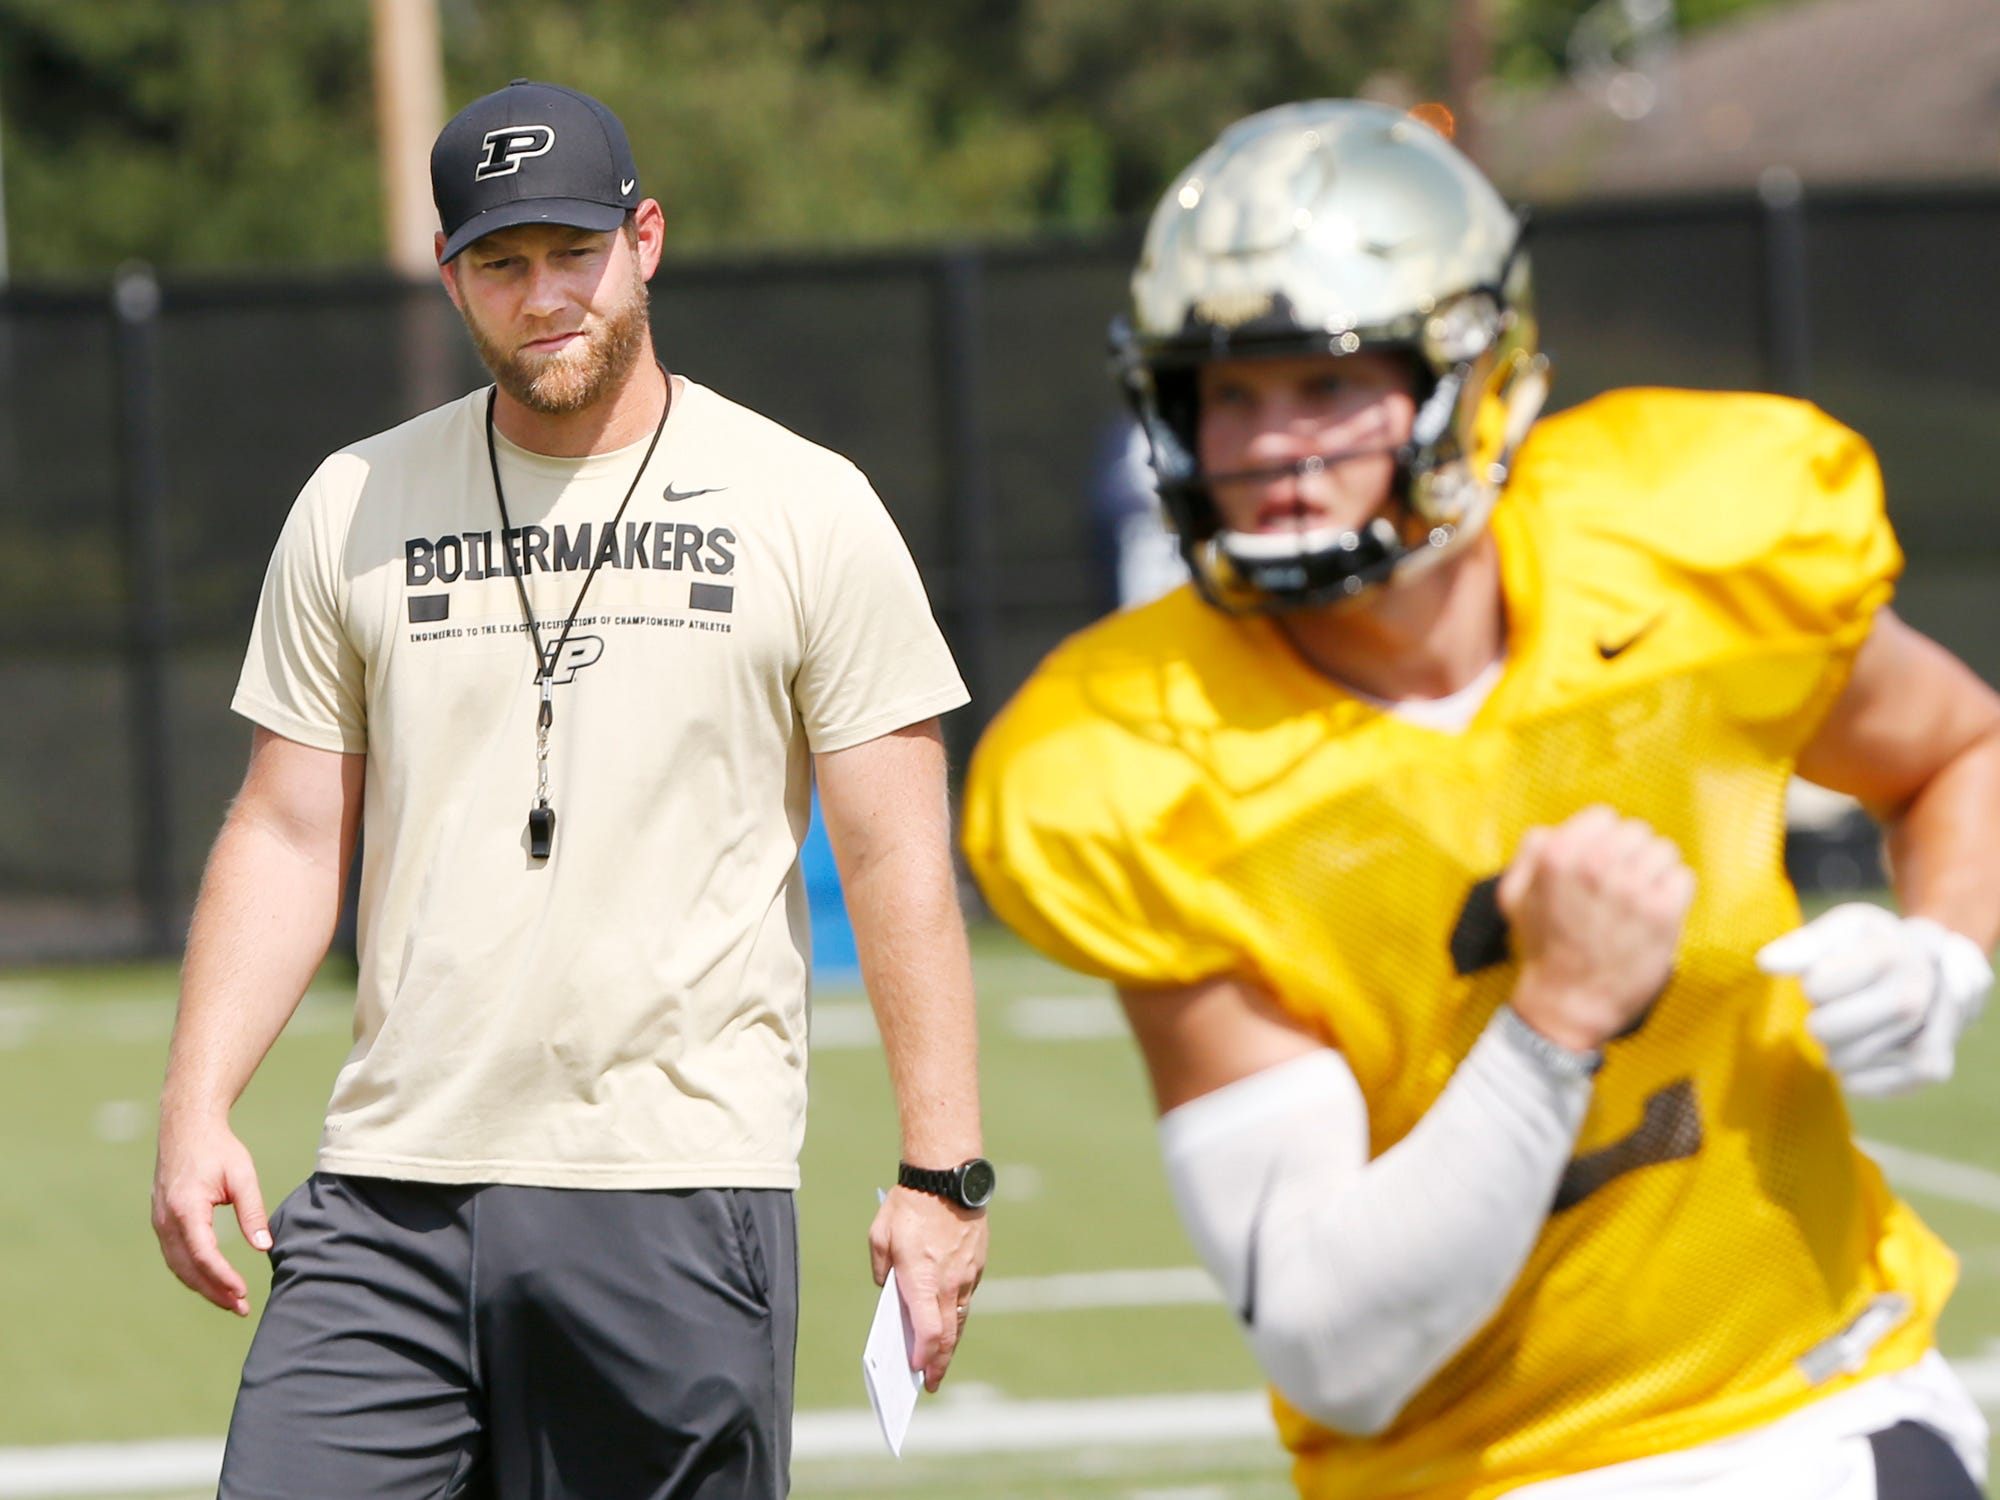 Quarterbacks coach and co-offensive coordinator Brian Brohm watches as quarterbacks run drills during Purdue football practice Monday, August 27, 2018, in West Lafayette.